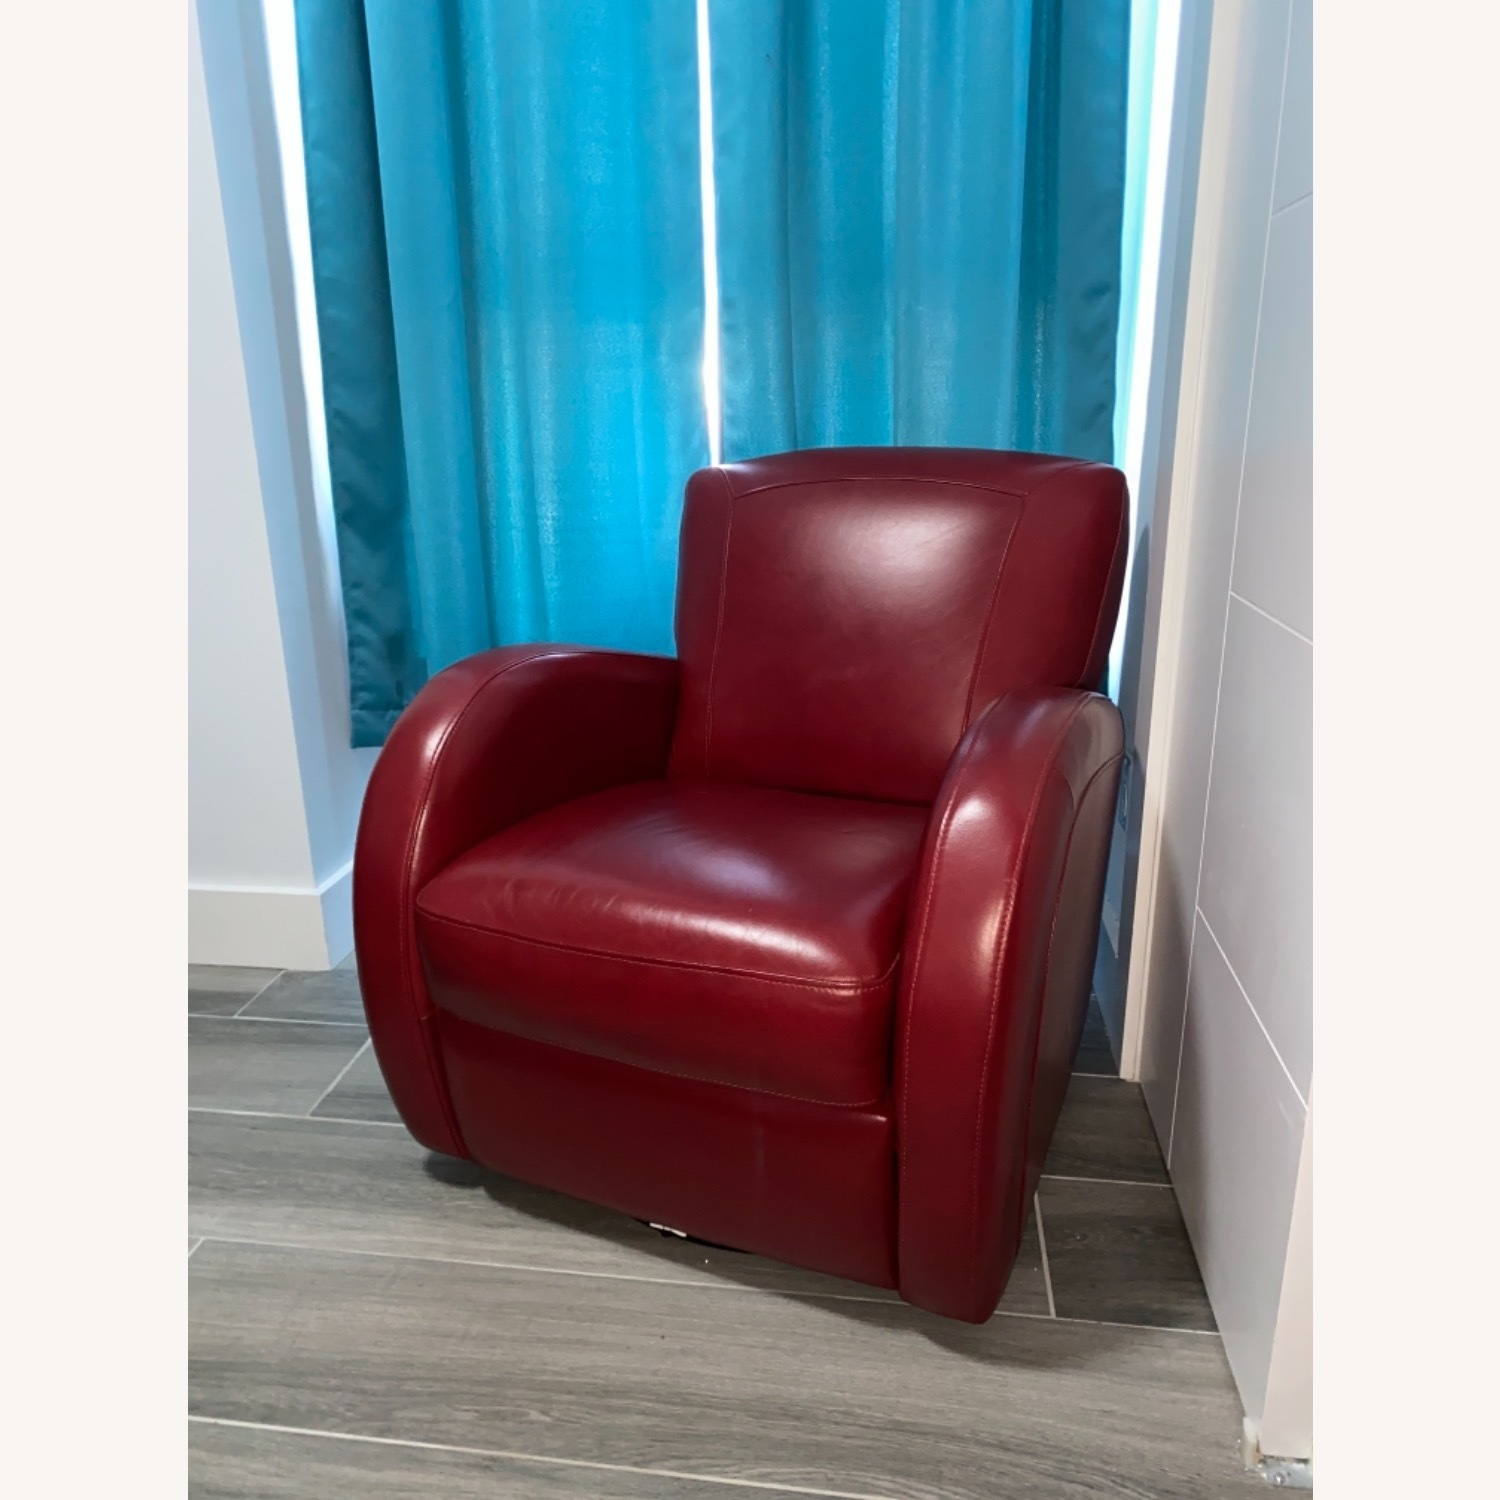 Bob's Discount Furniture Red Leather Accent Chair - image-1